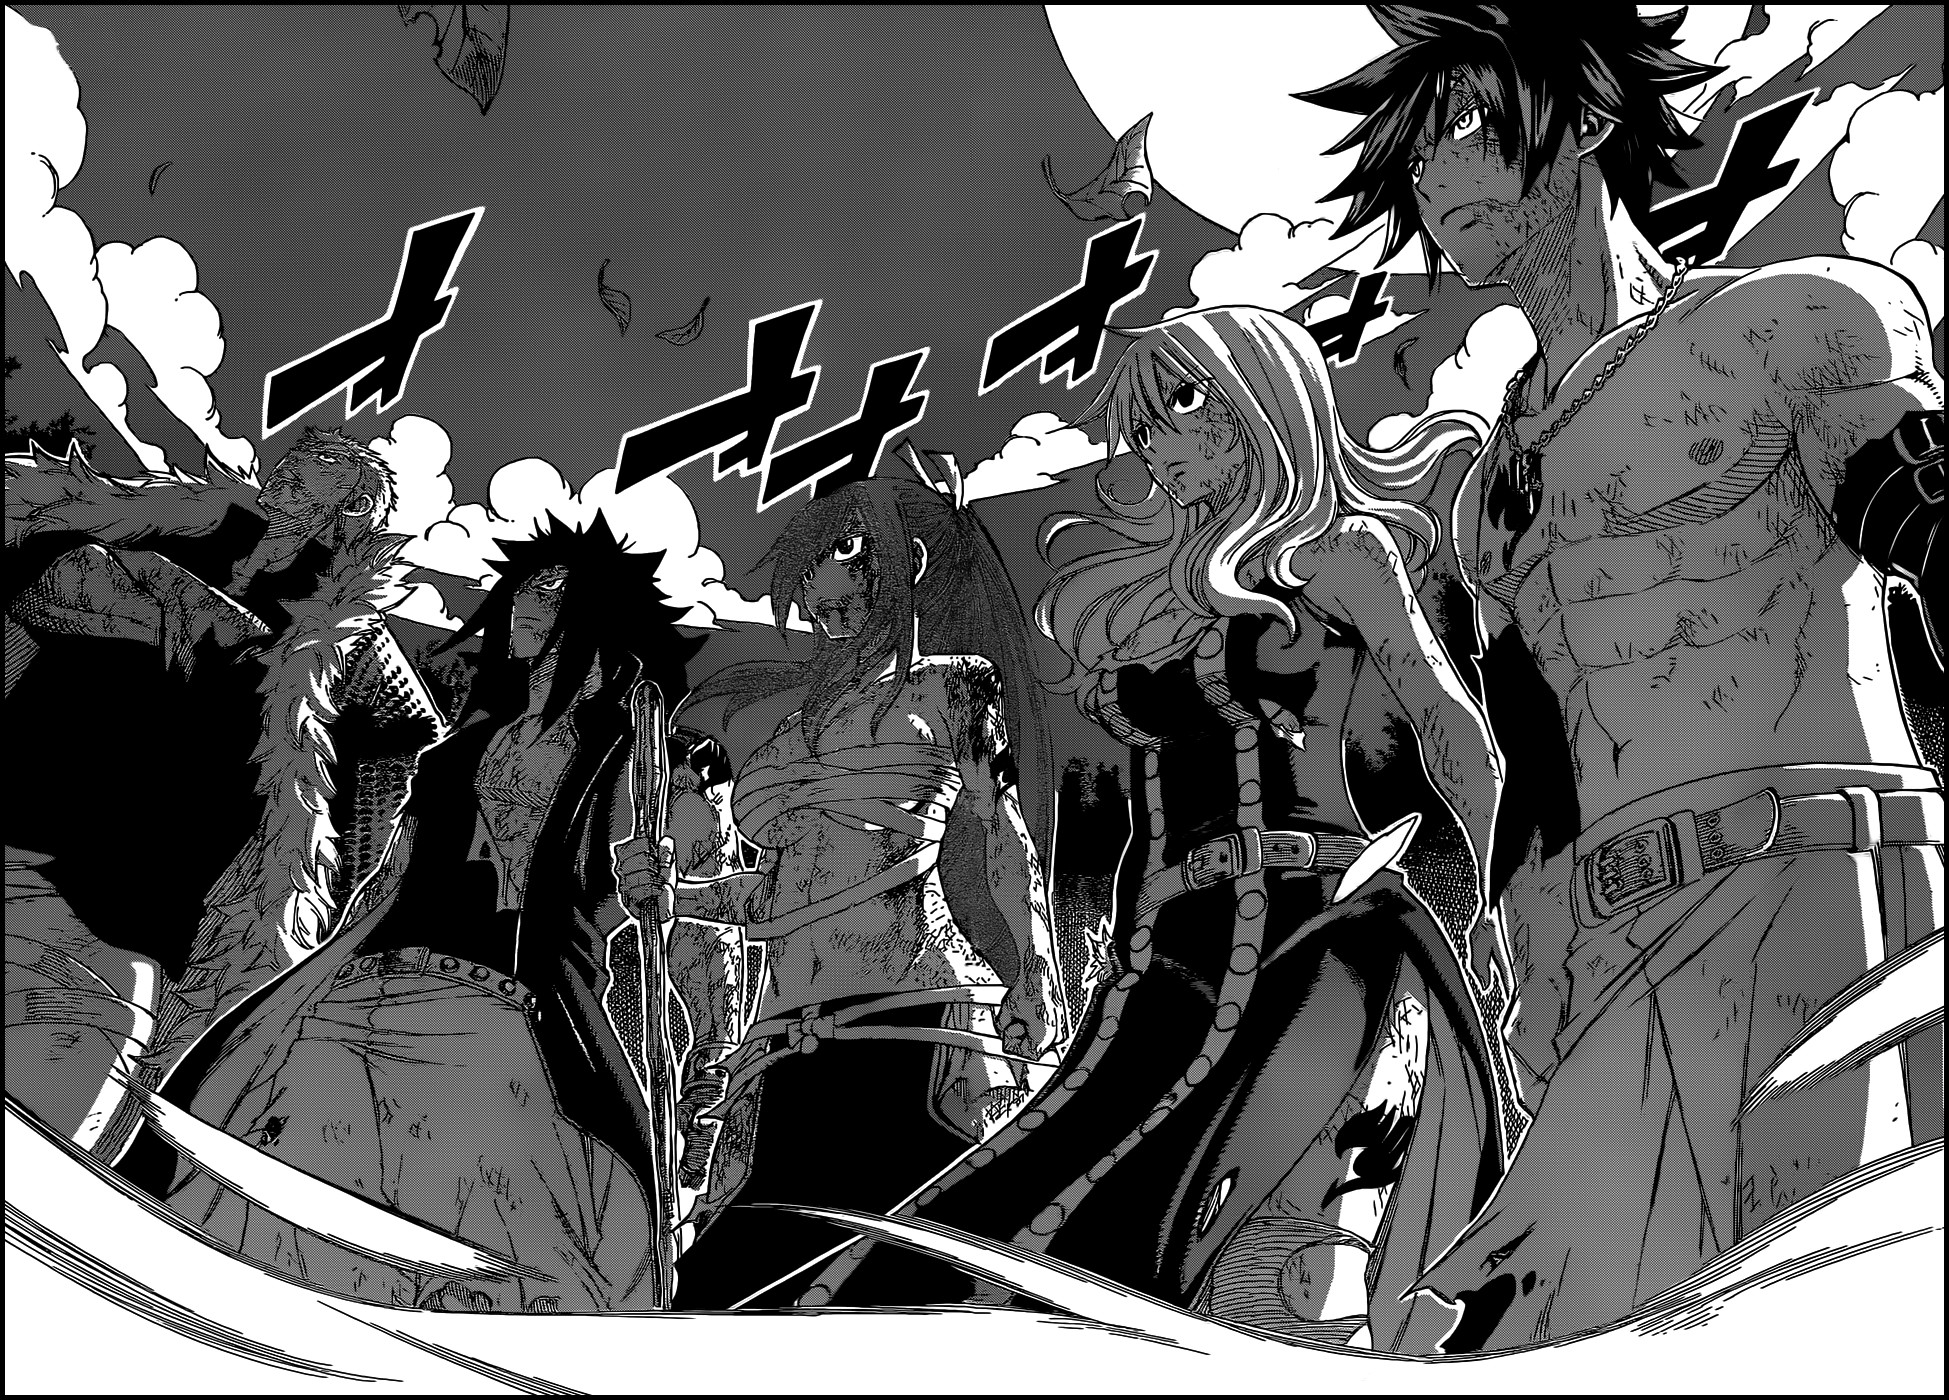 Fairy Tail 419 Manga Chapter Review Y U No Keep Epic Look Cover